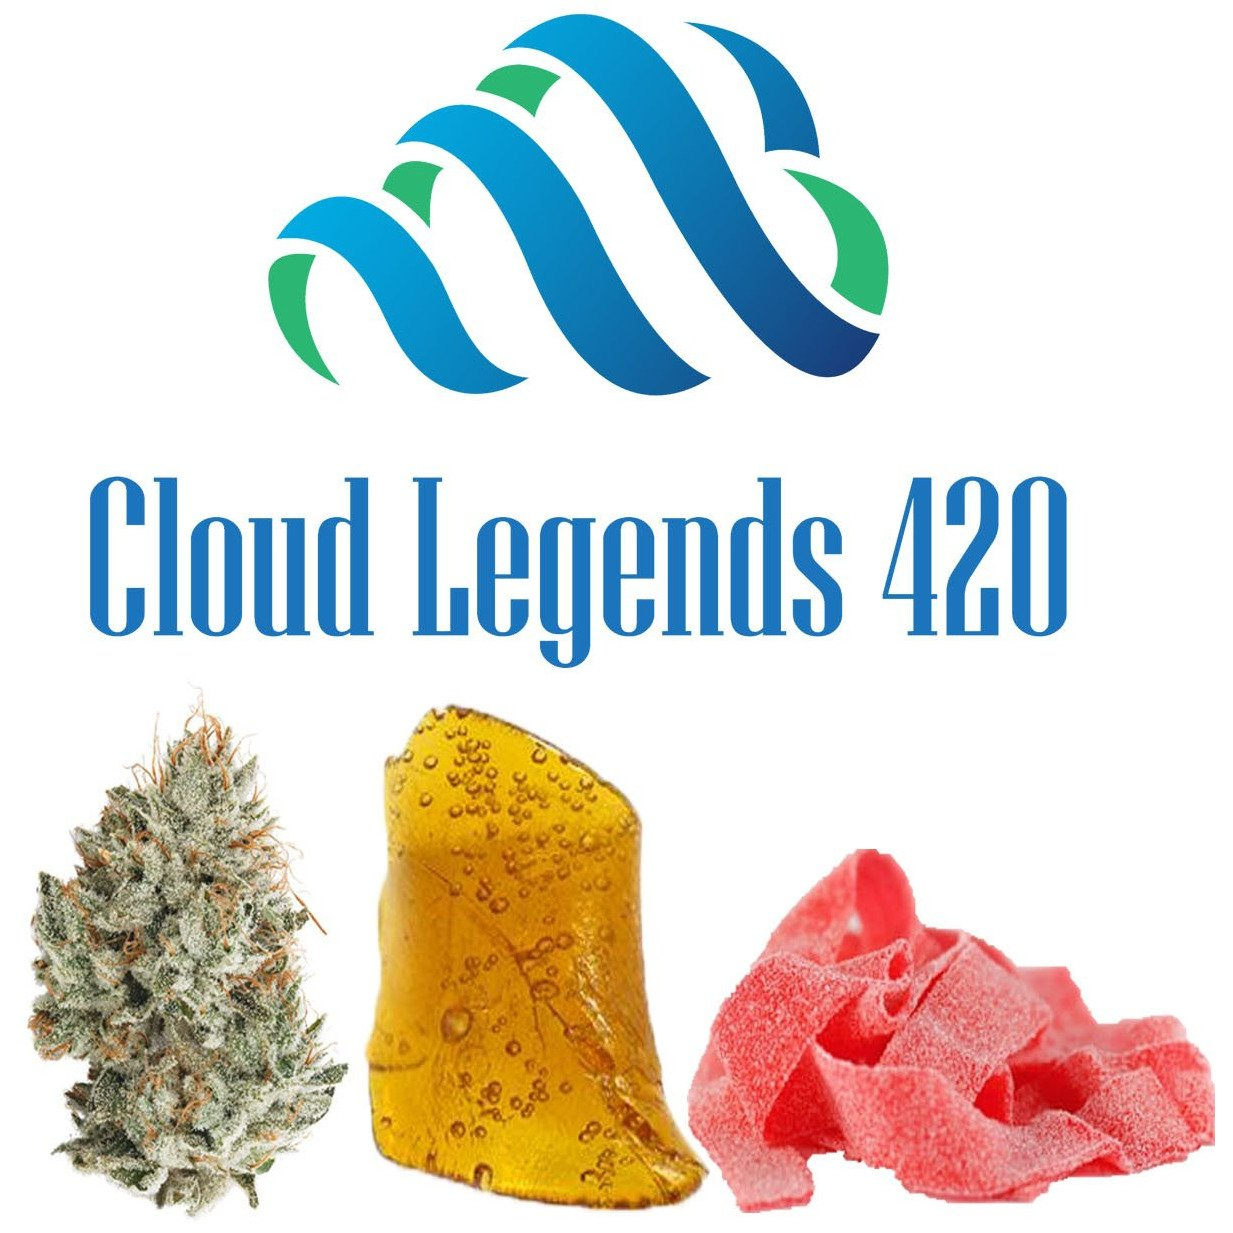 $150 Bundle -- 1/4 of Flower, 2 grams of Wax or Crumble & 800mg THC Syrup -- $30 Savings